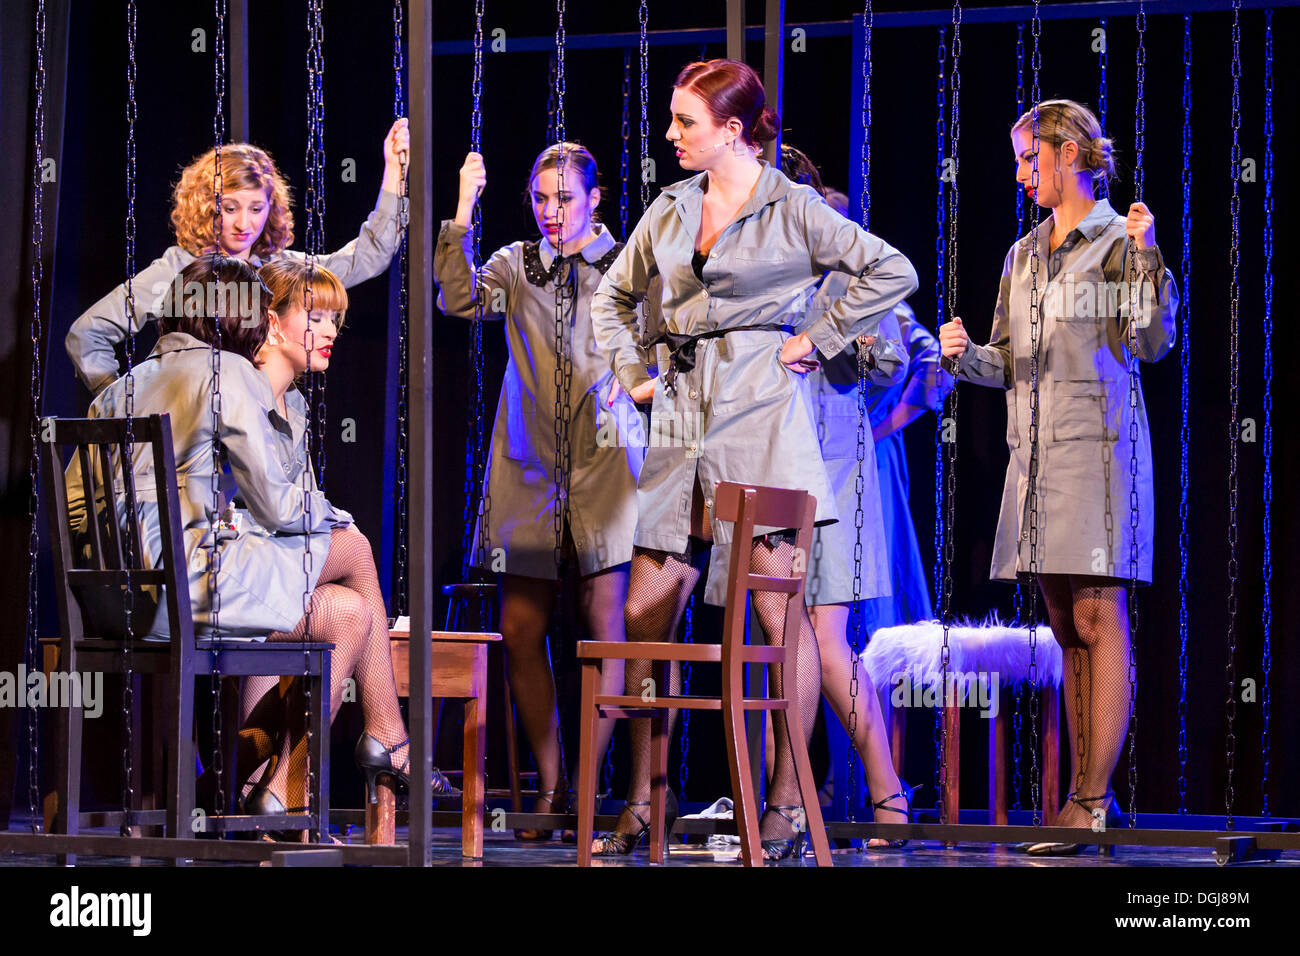 Musical 'Chicago', women in prison, live performance, Le Théâtre in Kriens, Lucerne, Switzerland, Europe - Stock Image